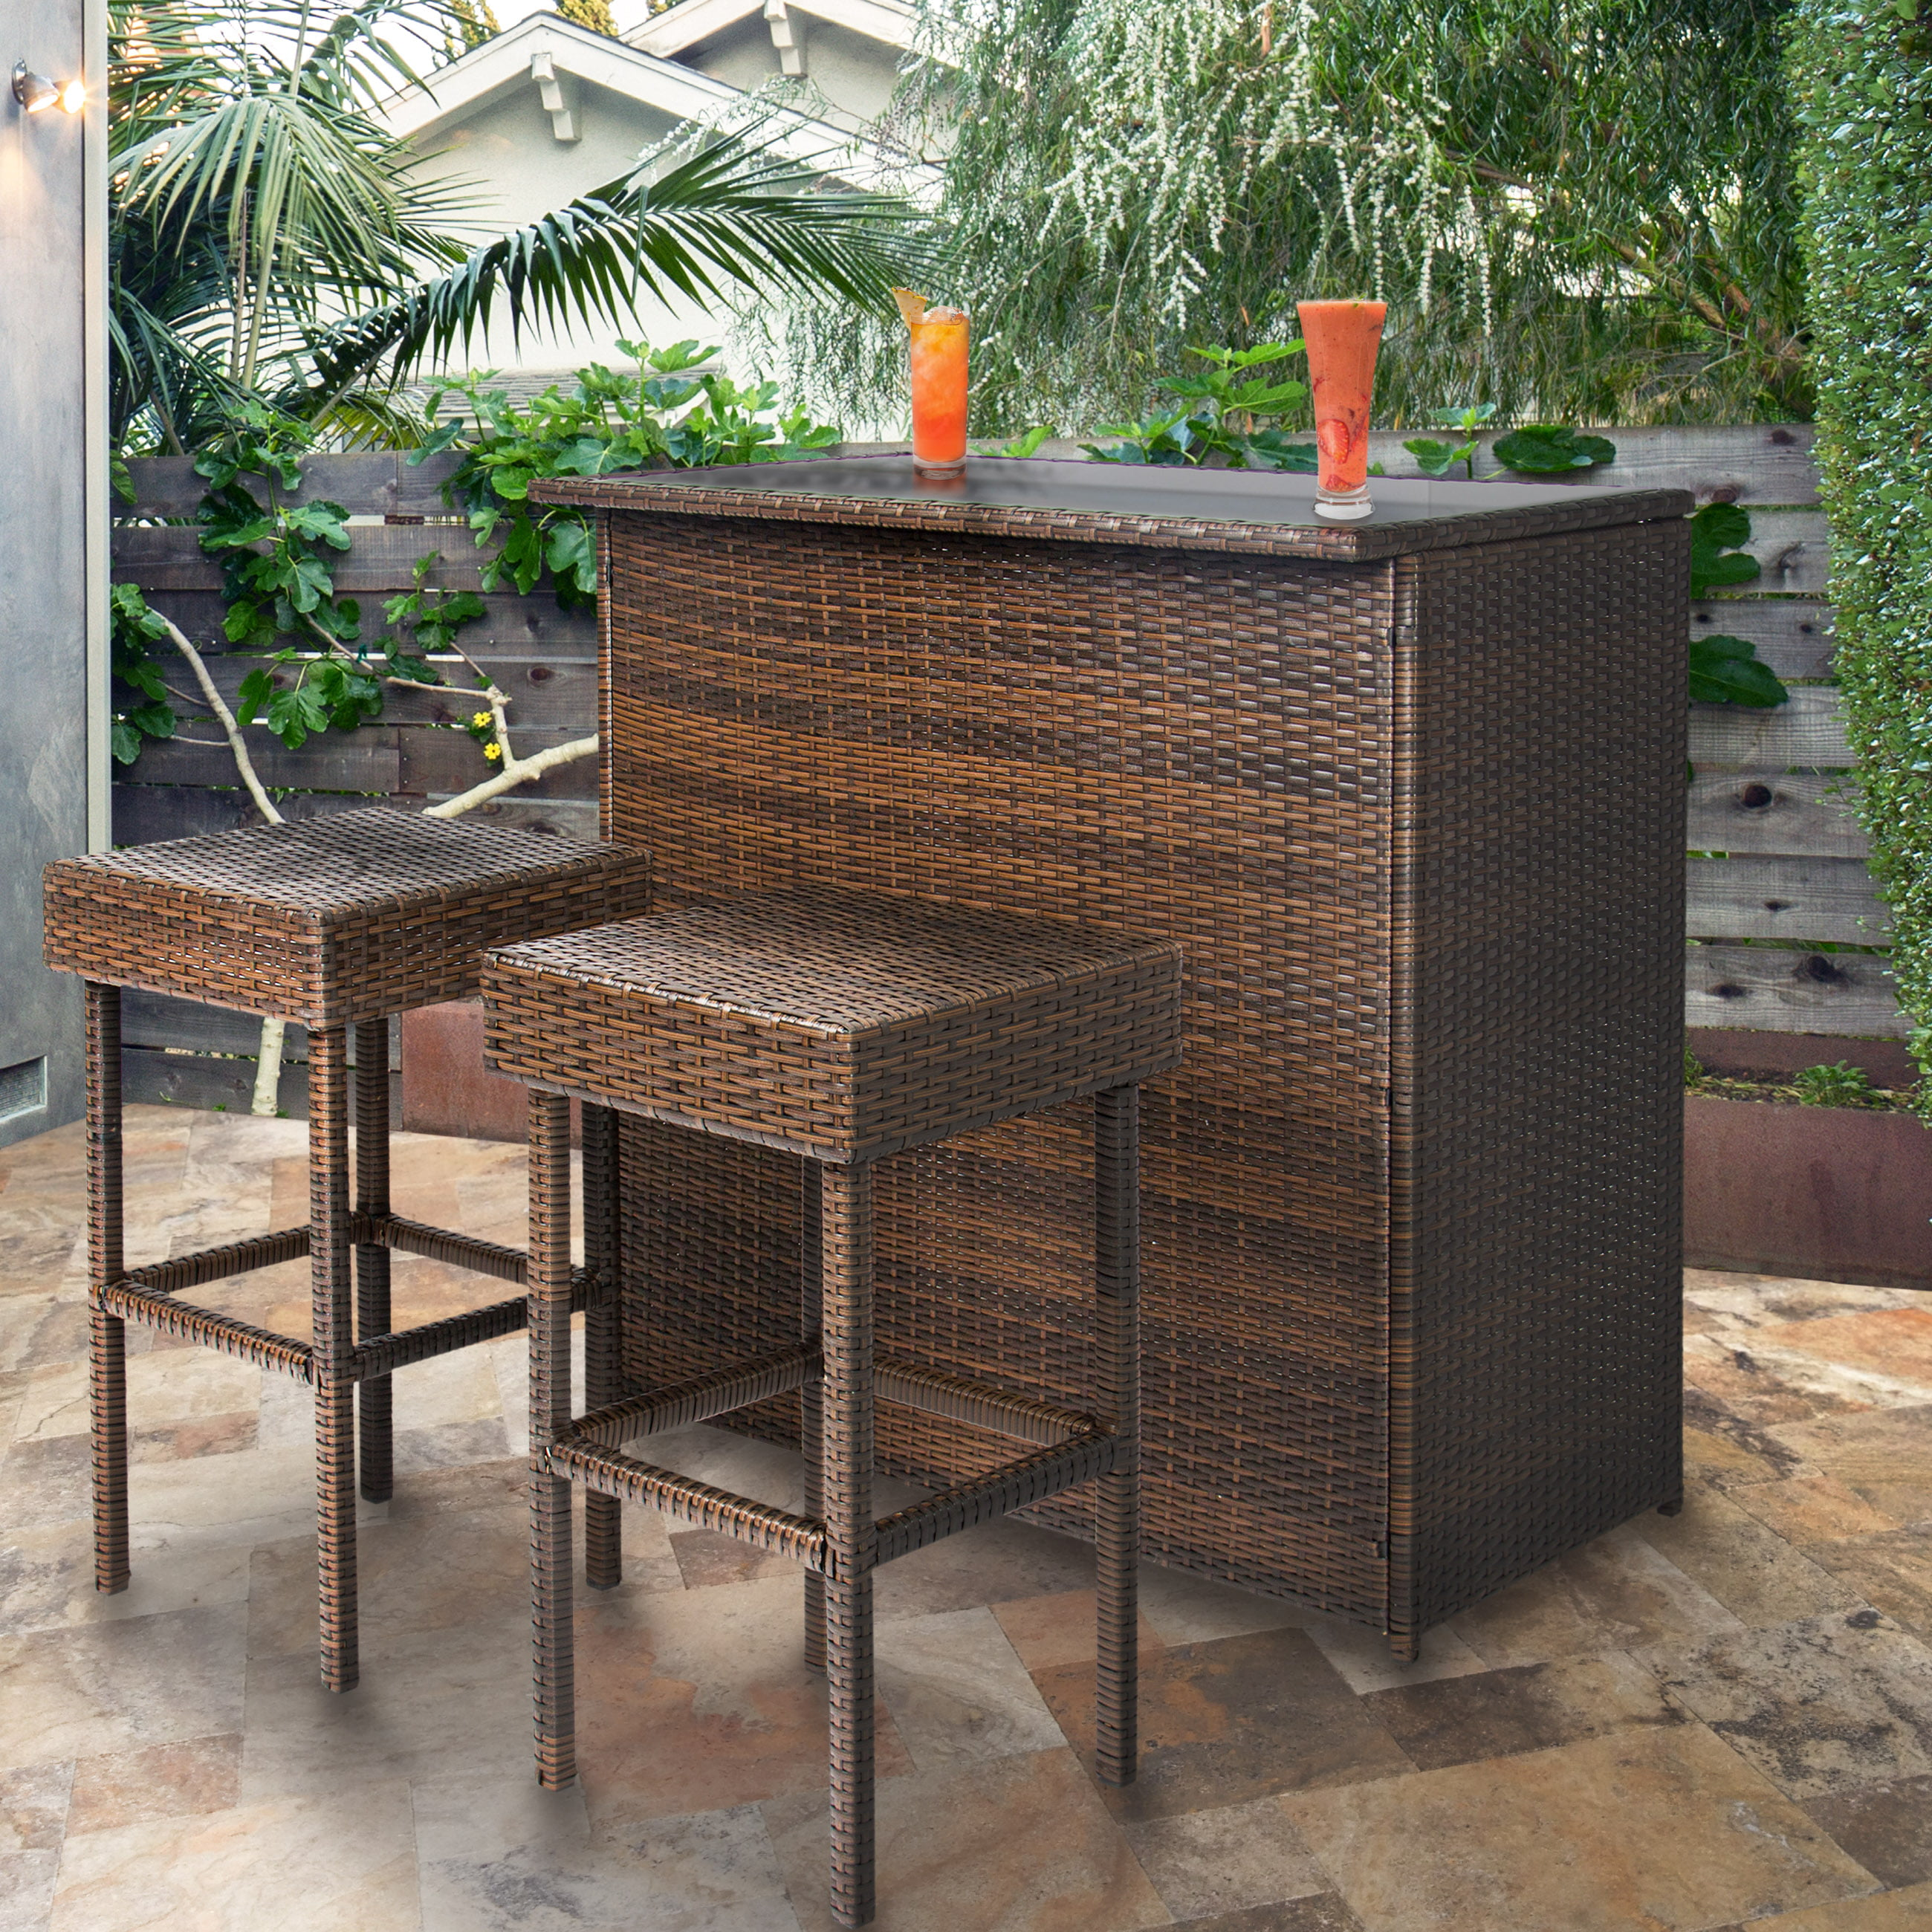 Exceptionnel Best Choice Products 3PC Wicker Bar Set Patio Outdoor Backyard Table U0026 2  Stools Rattan Garden Furniture   Walmart.com